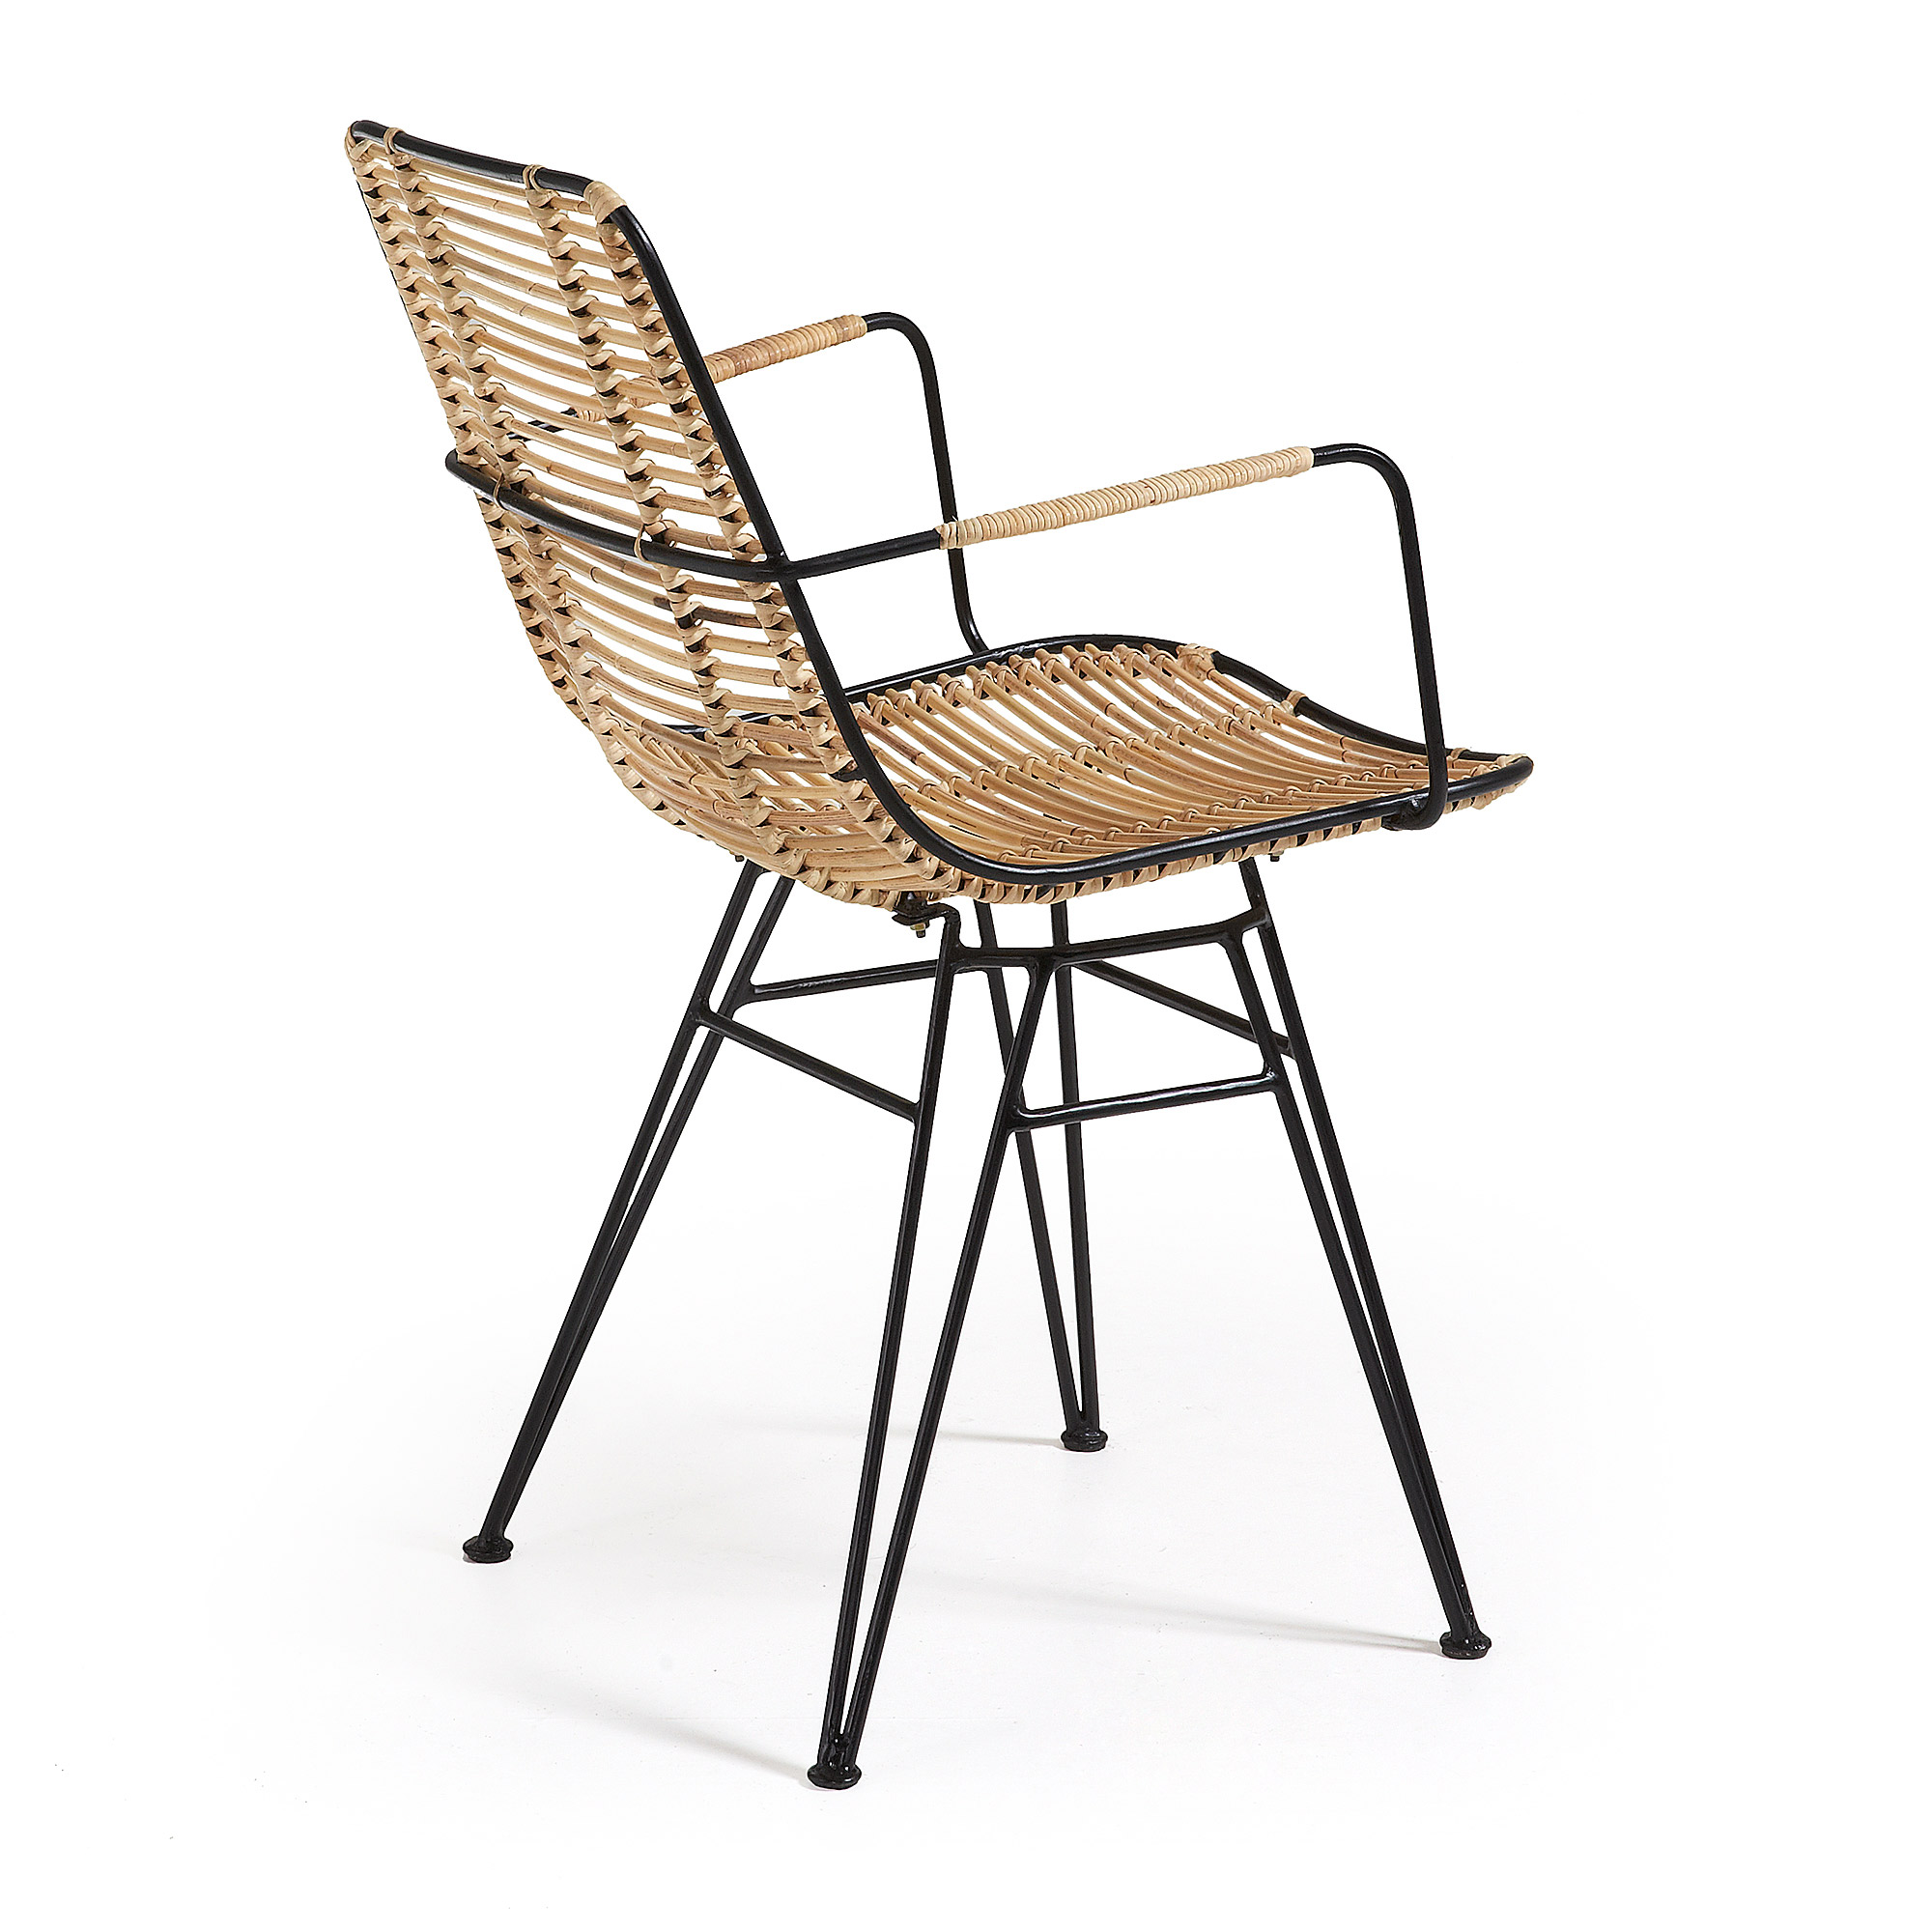 Lacroix Arm Chair